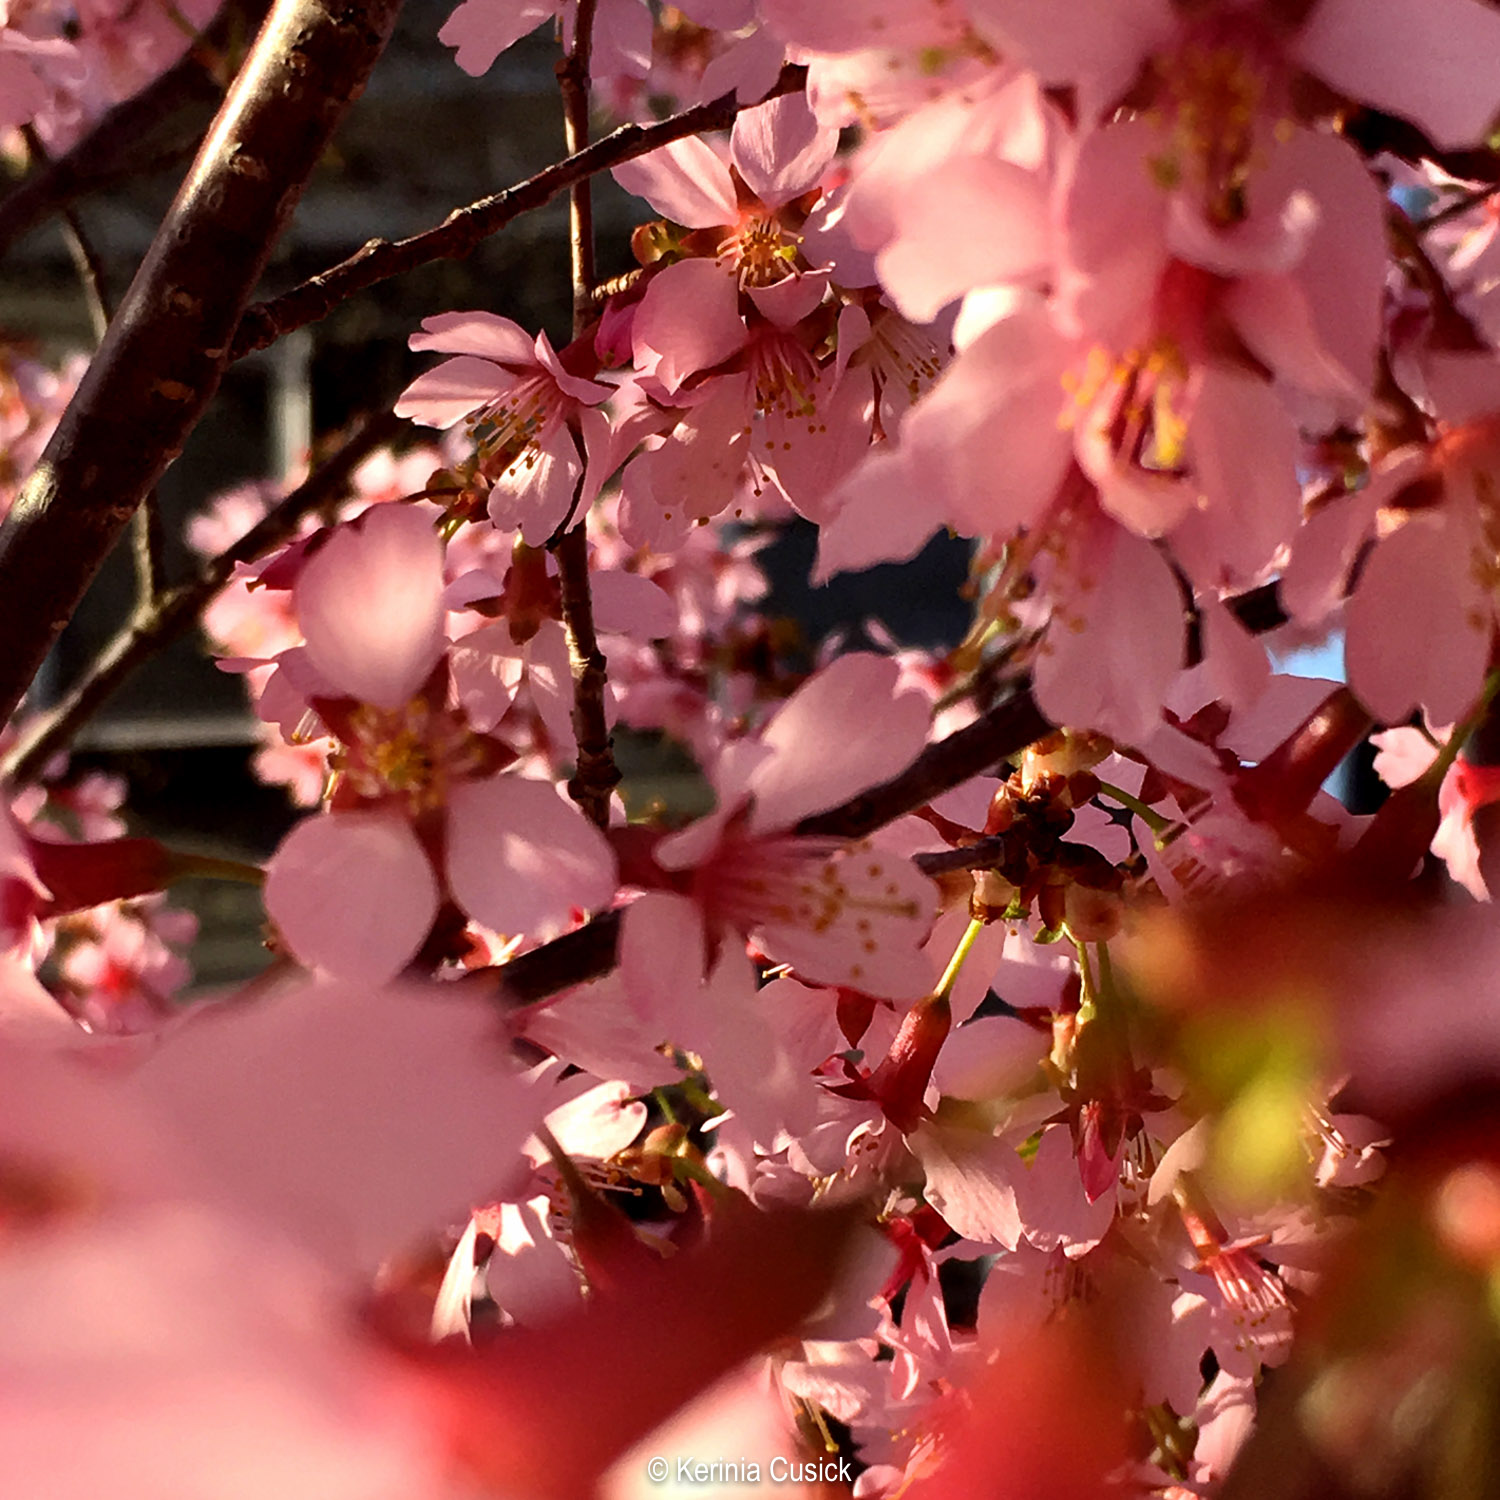 Shooting cherry blossoms in macro mode on an iPhone. Using the blurred foreground to virtually frame the shot and focus the eye.